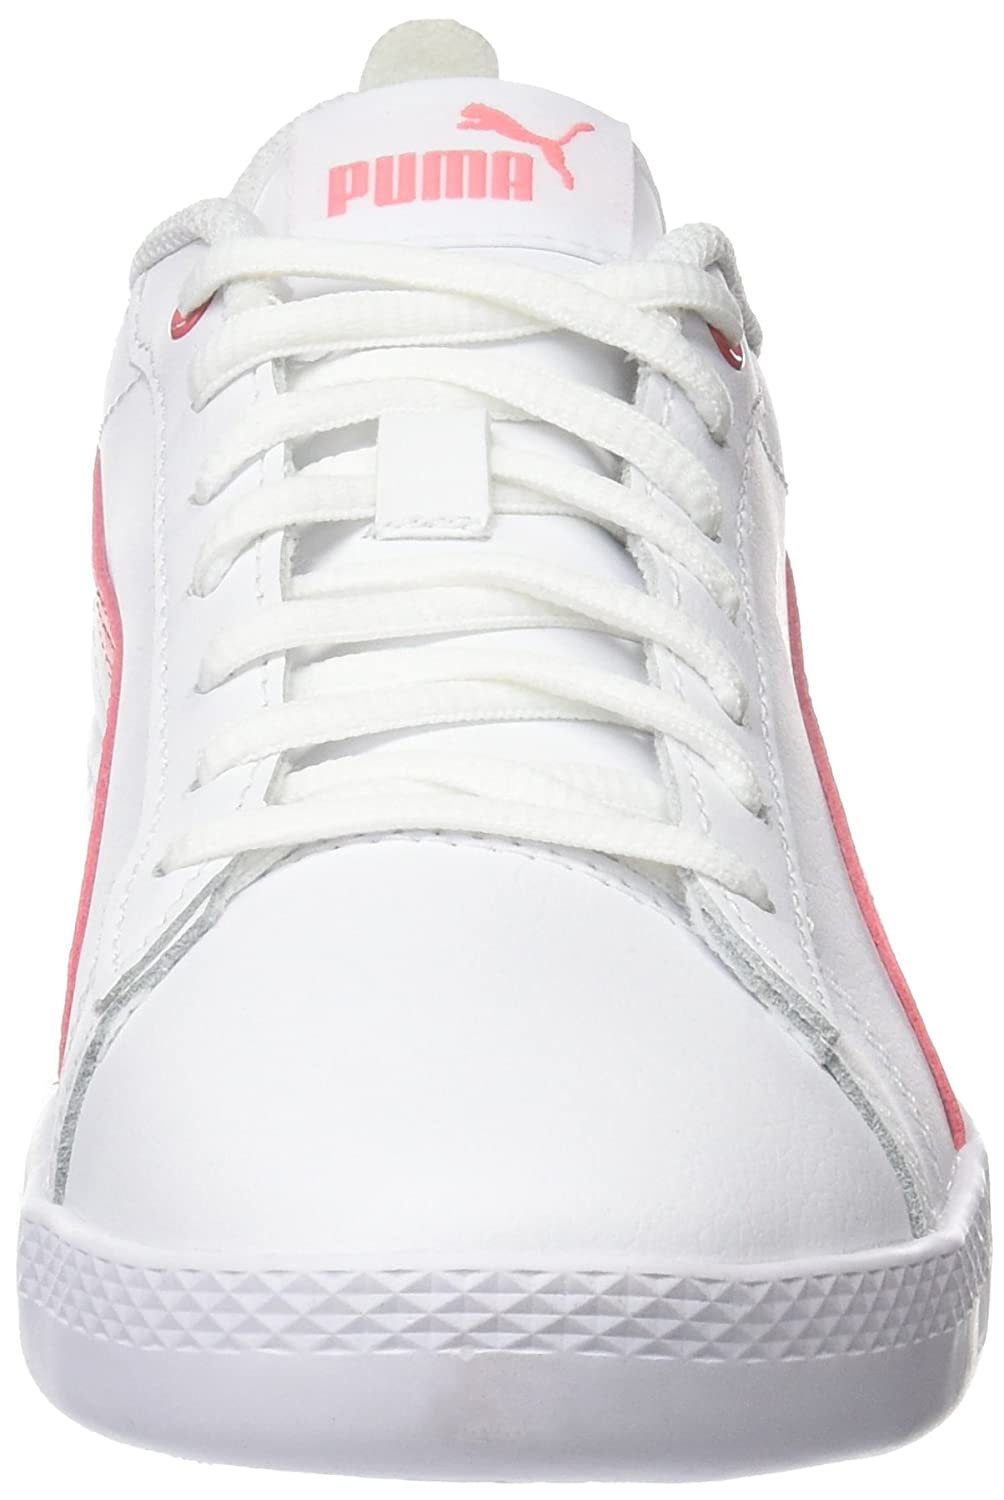 5a7f0279ed11 Puma Women s Smash WNS V2 L White-Shell Pin and Pink Leather Sneakers-4  UK India (37 EU) (36520805)  Buy Online at Low Prices in India - Amazon.in